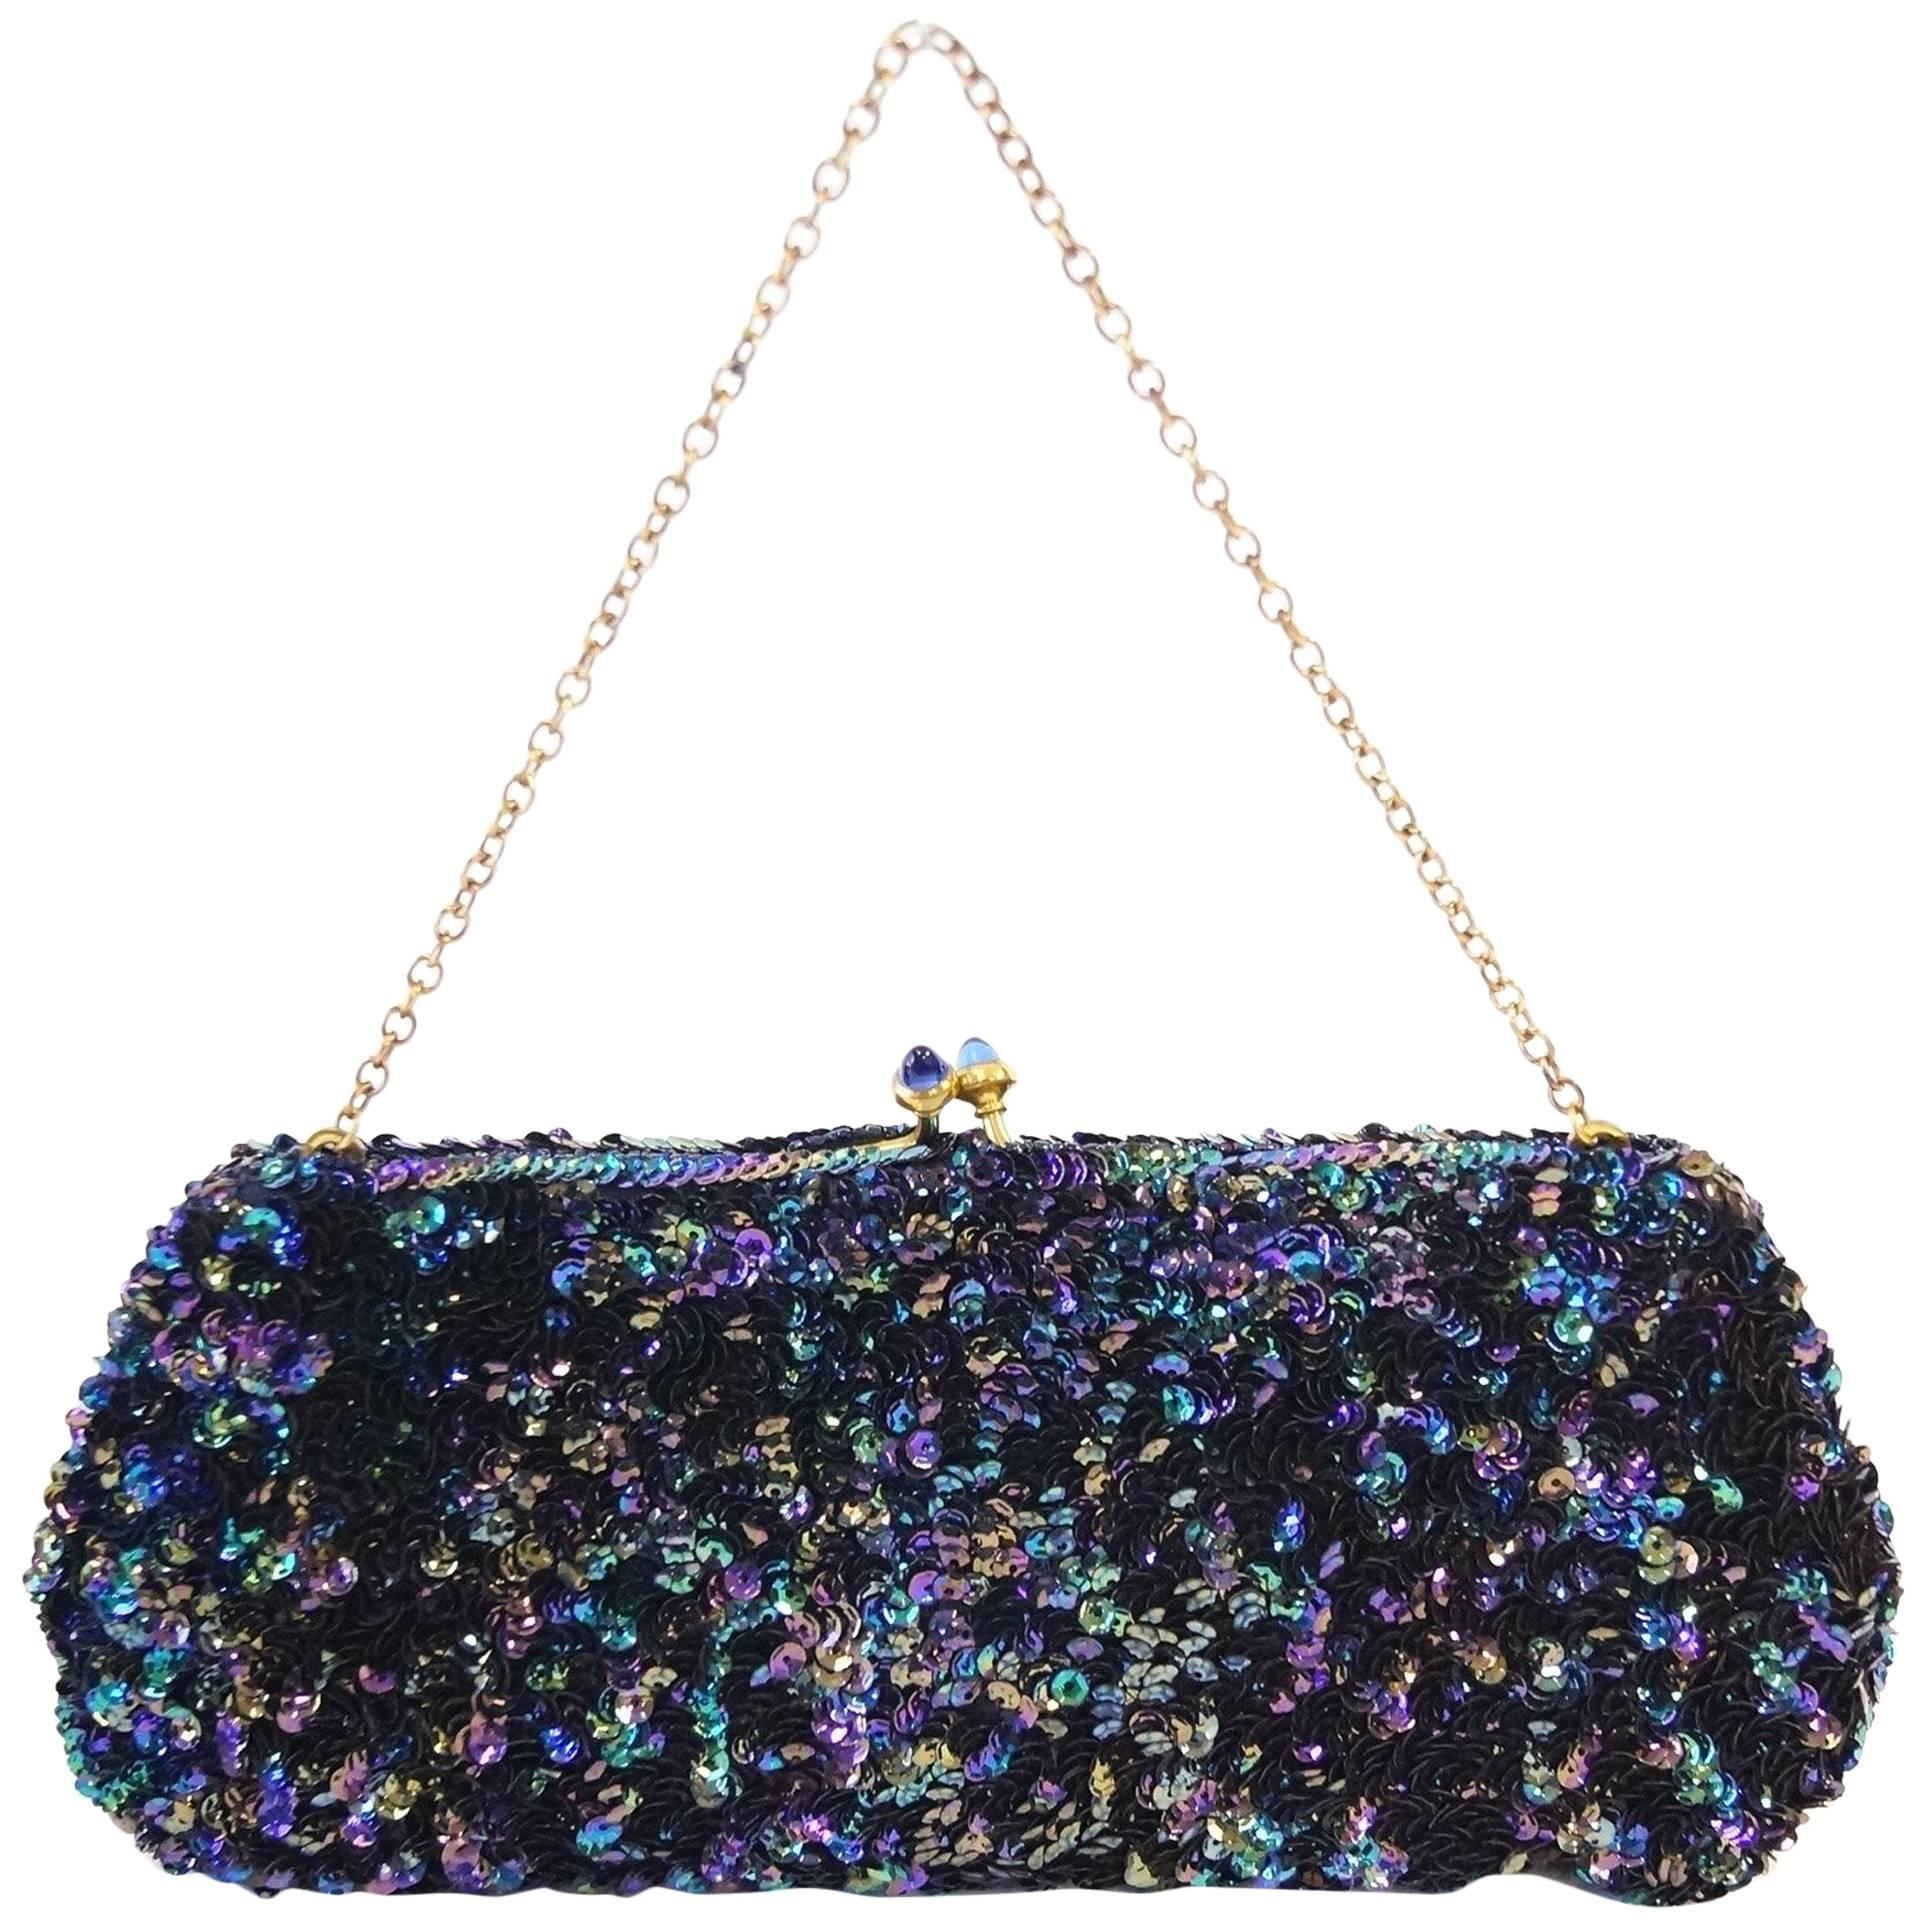 b655b8c268a7 Josef of Hollywood Peacock Iridescent Sequin Clutch, 1940s at 1stdibs